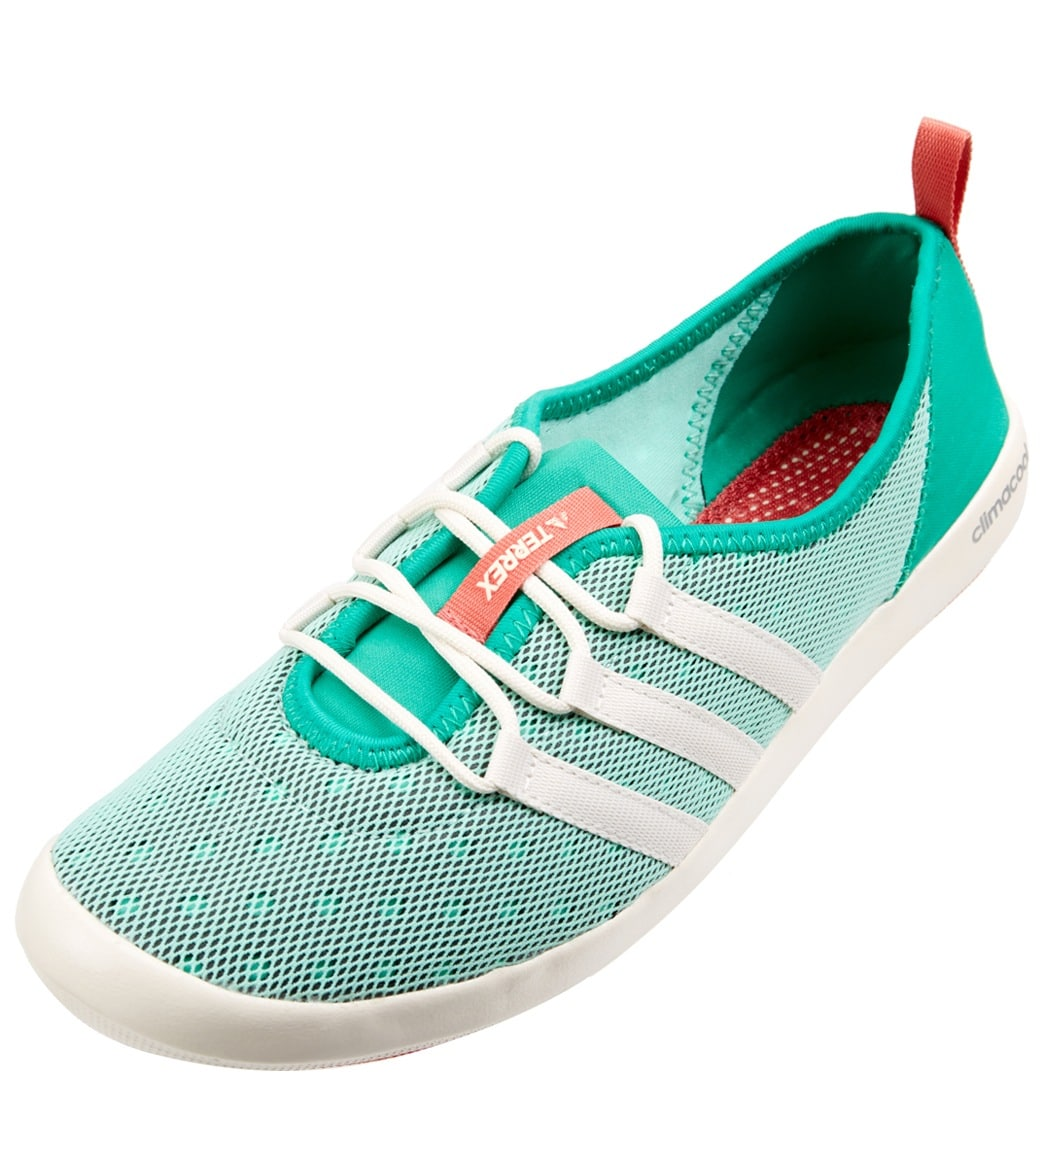 Adidas Women's Climacool Boat Sleek Water Shoes at SwimOutlet.com - Free  Shipping